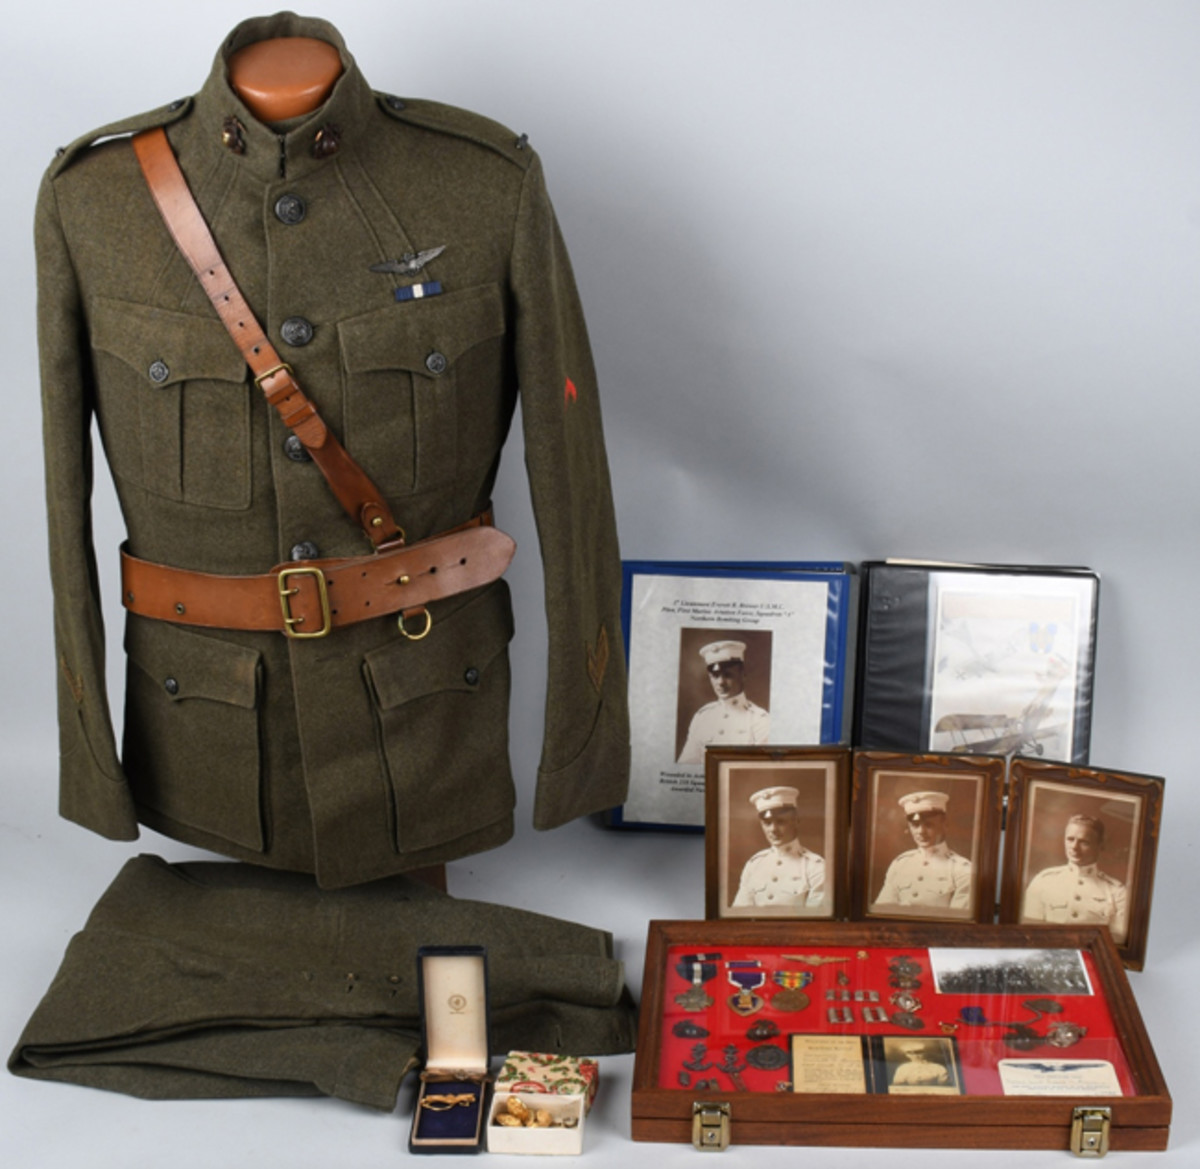 Uniform, medals and extensive career archive of WWI U.S. Marine Corps pilot Everitt R. Brewer, the first USMC pilot to score an aerial kill in France.